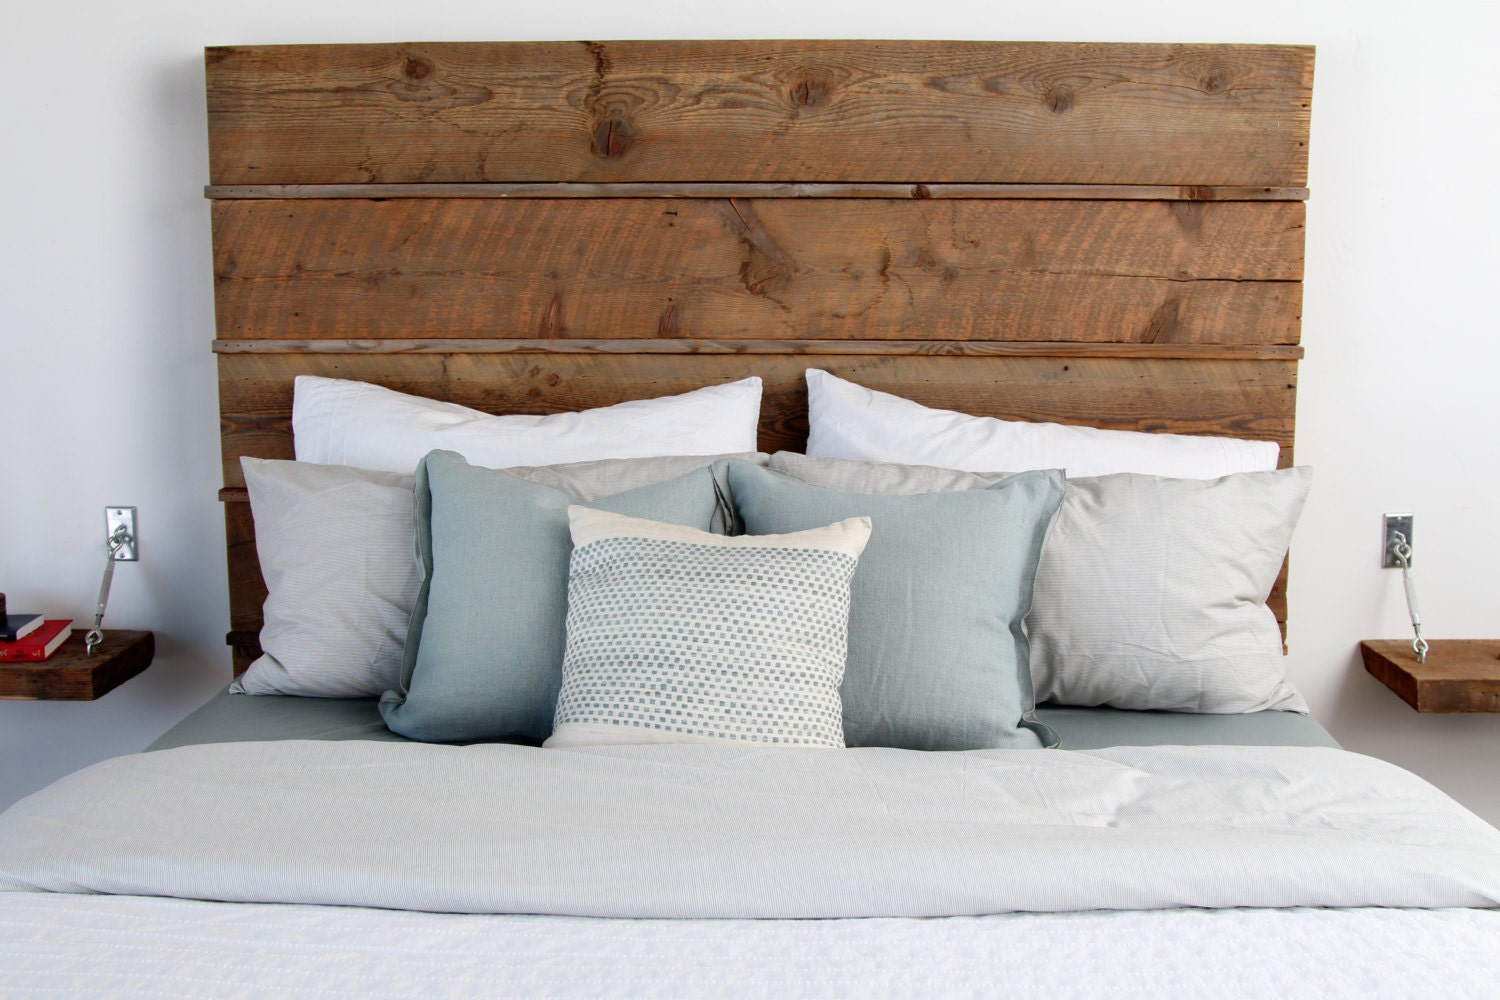 Reclaimed Barn Wood Headboard By Silicatestudio On Etsy